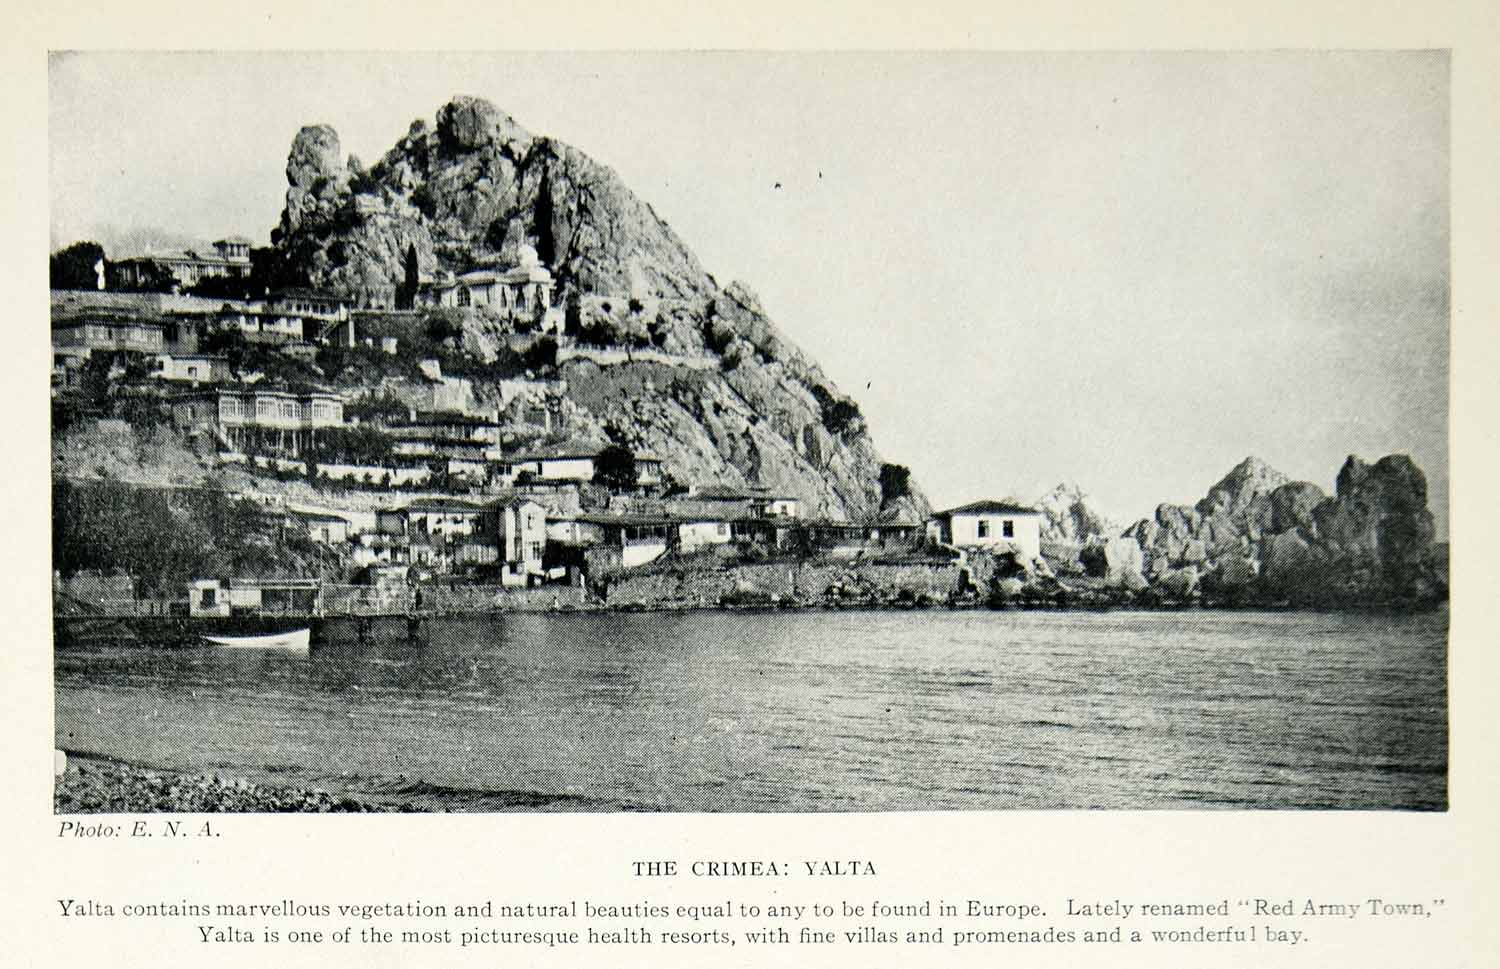 1925 Print Yalta Crimea Ukraine Black Sea Europe Cityscape Landscape Bay XGAG2